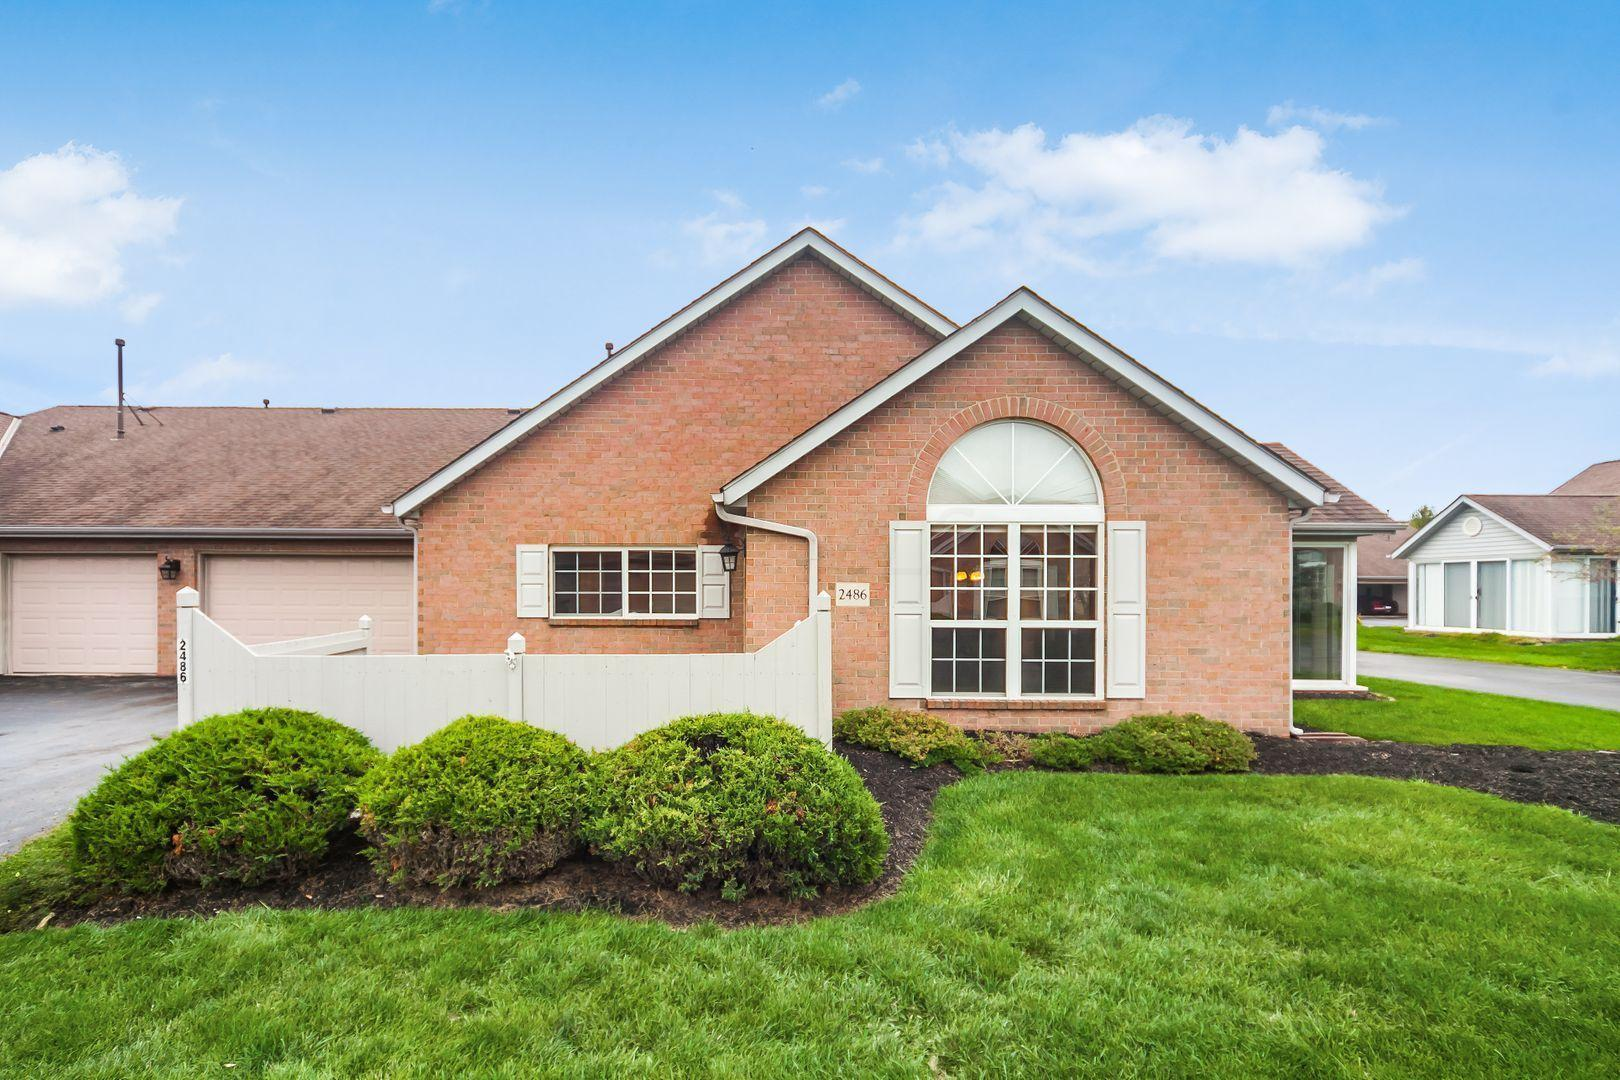 Property for sale at 2486 Meadow Glade Drive, Hilliard,  Ohio 43026